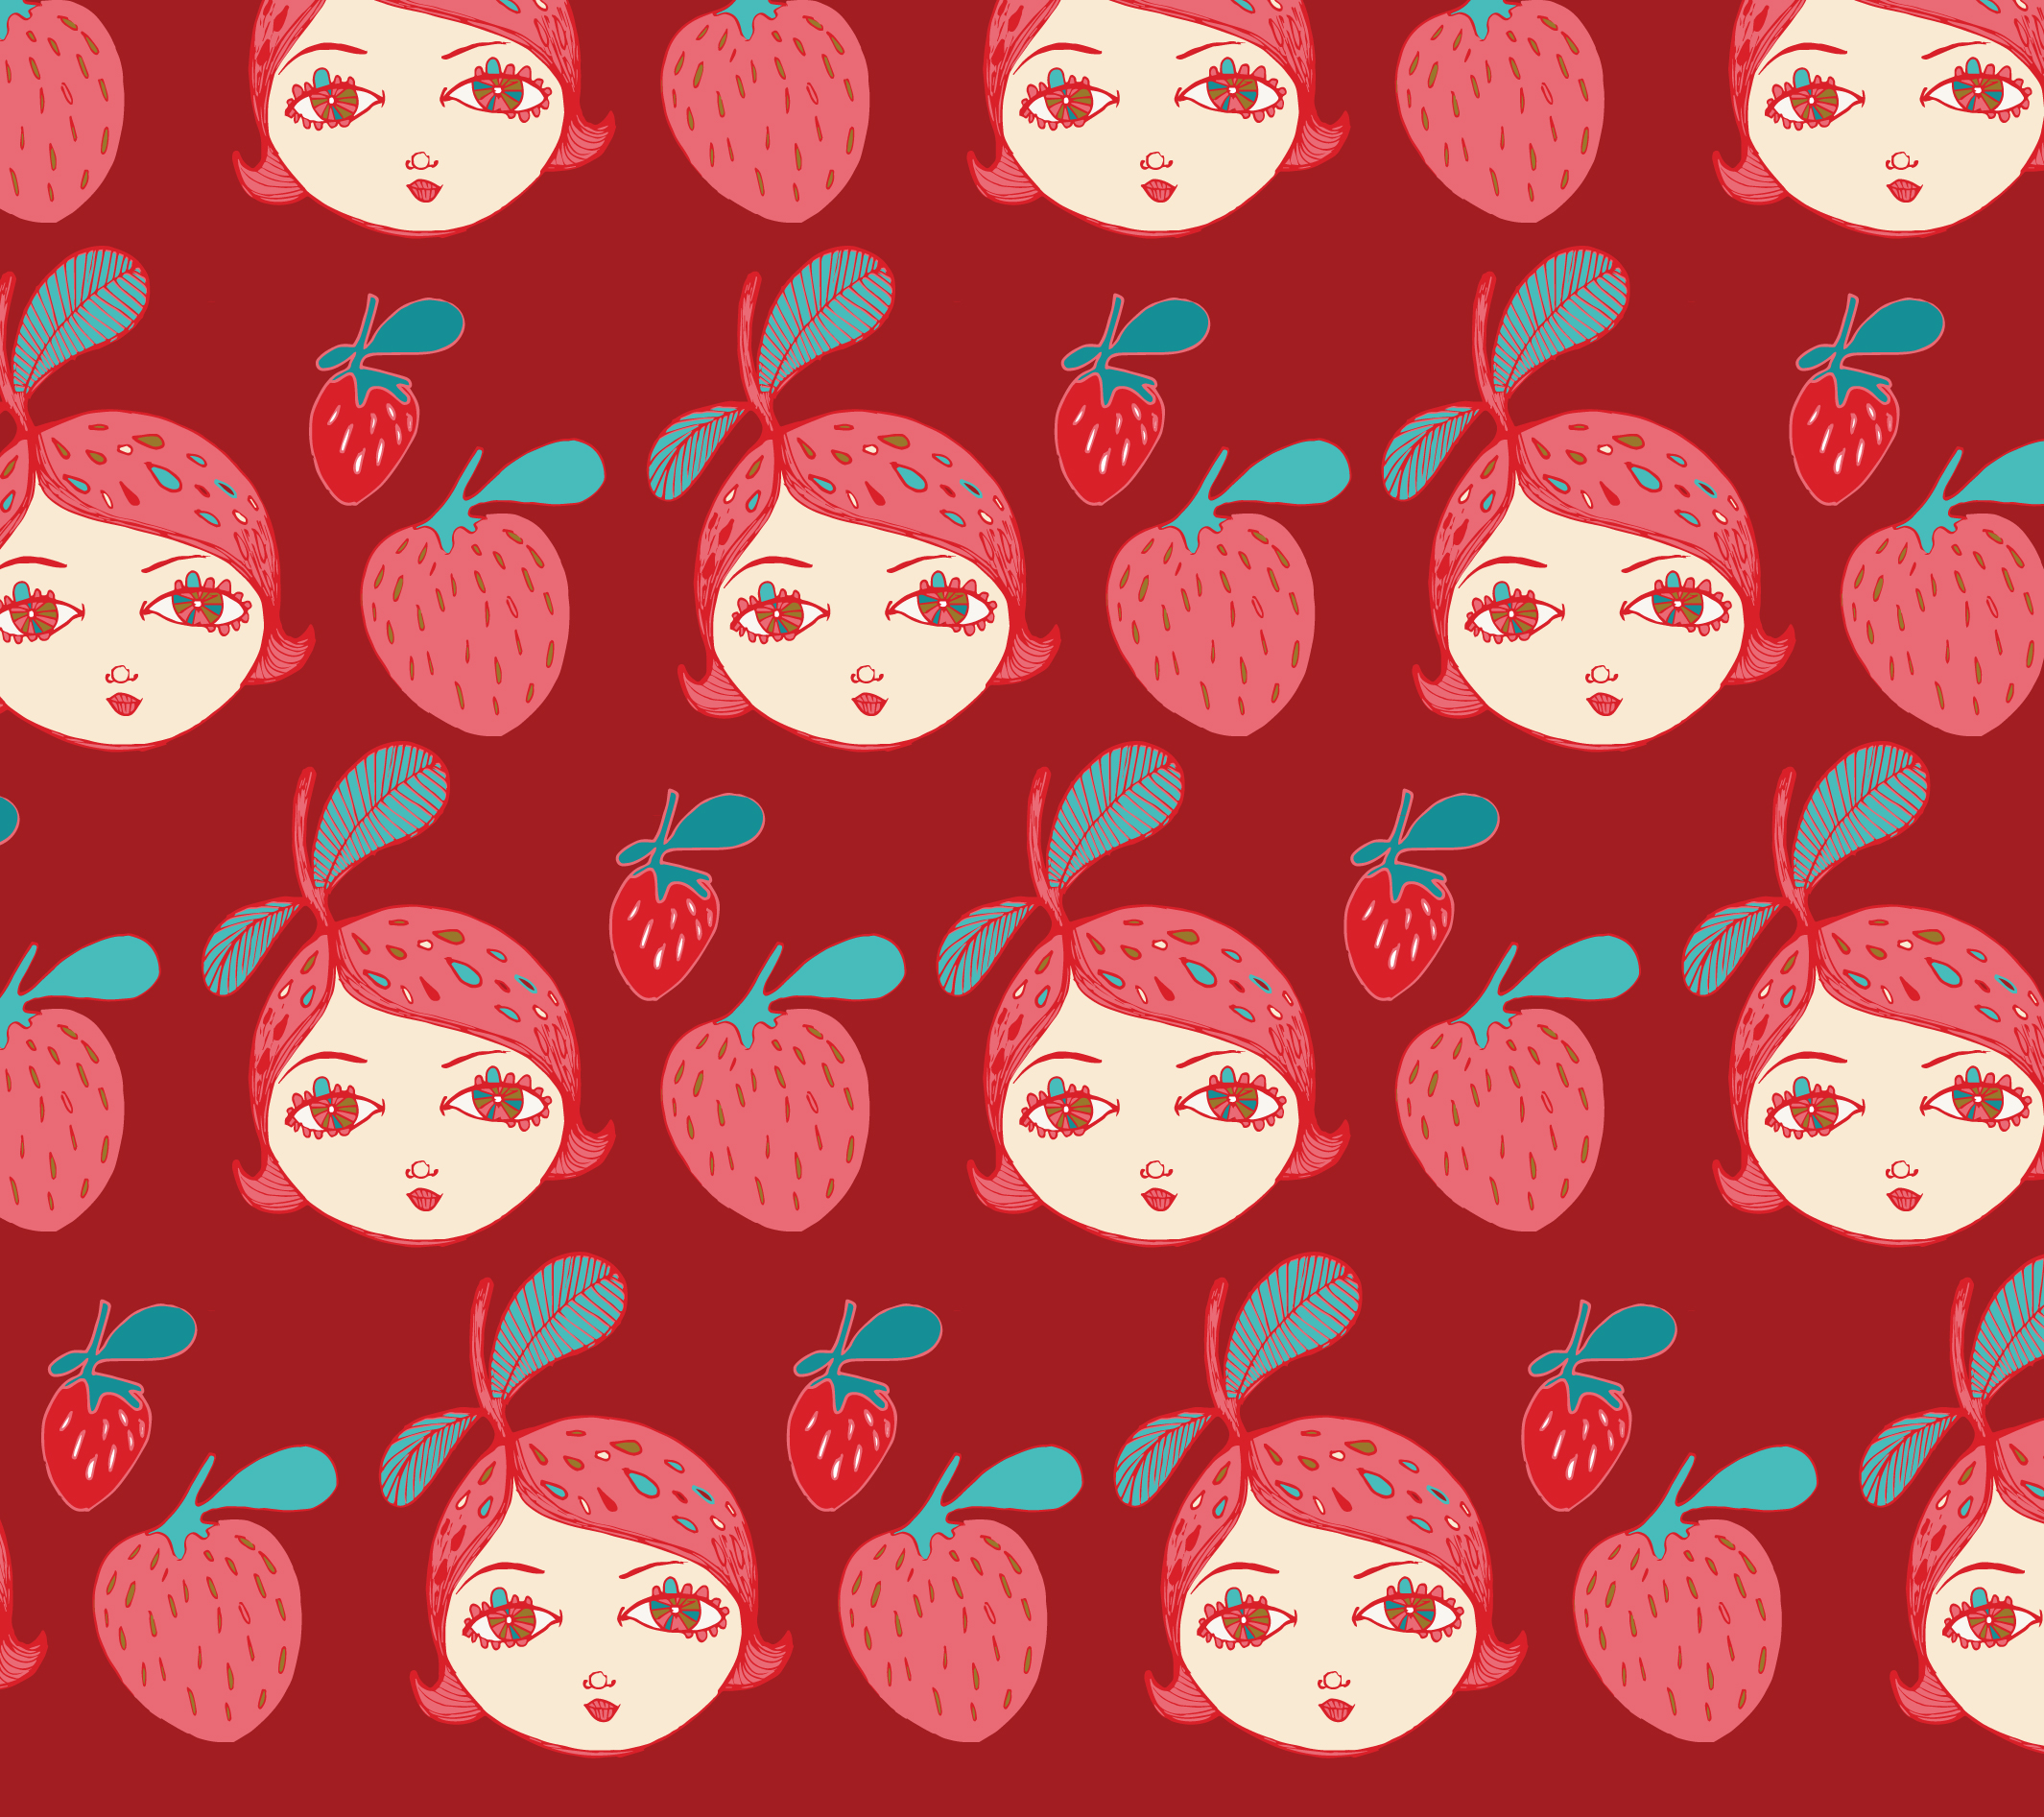 BB_PyrexFruits_Coord_12_strawberries.jpg